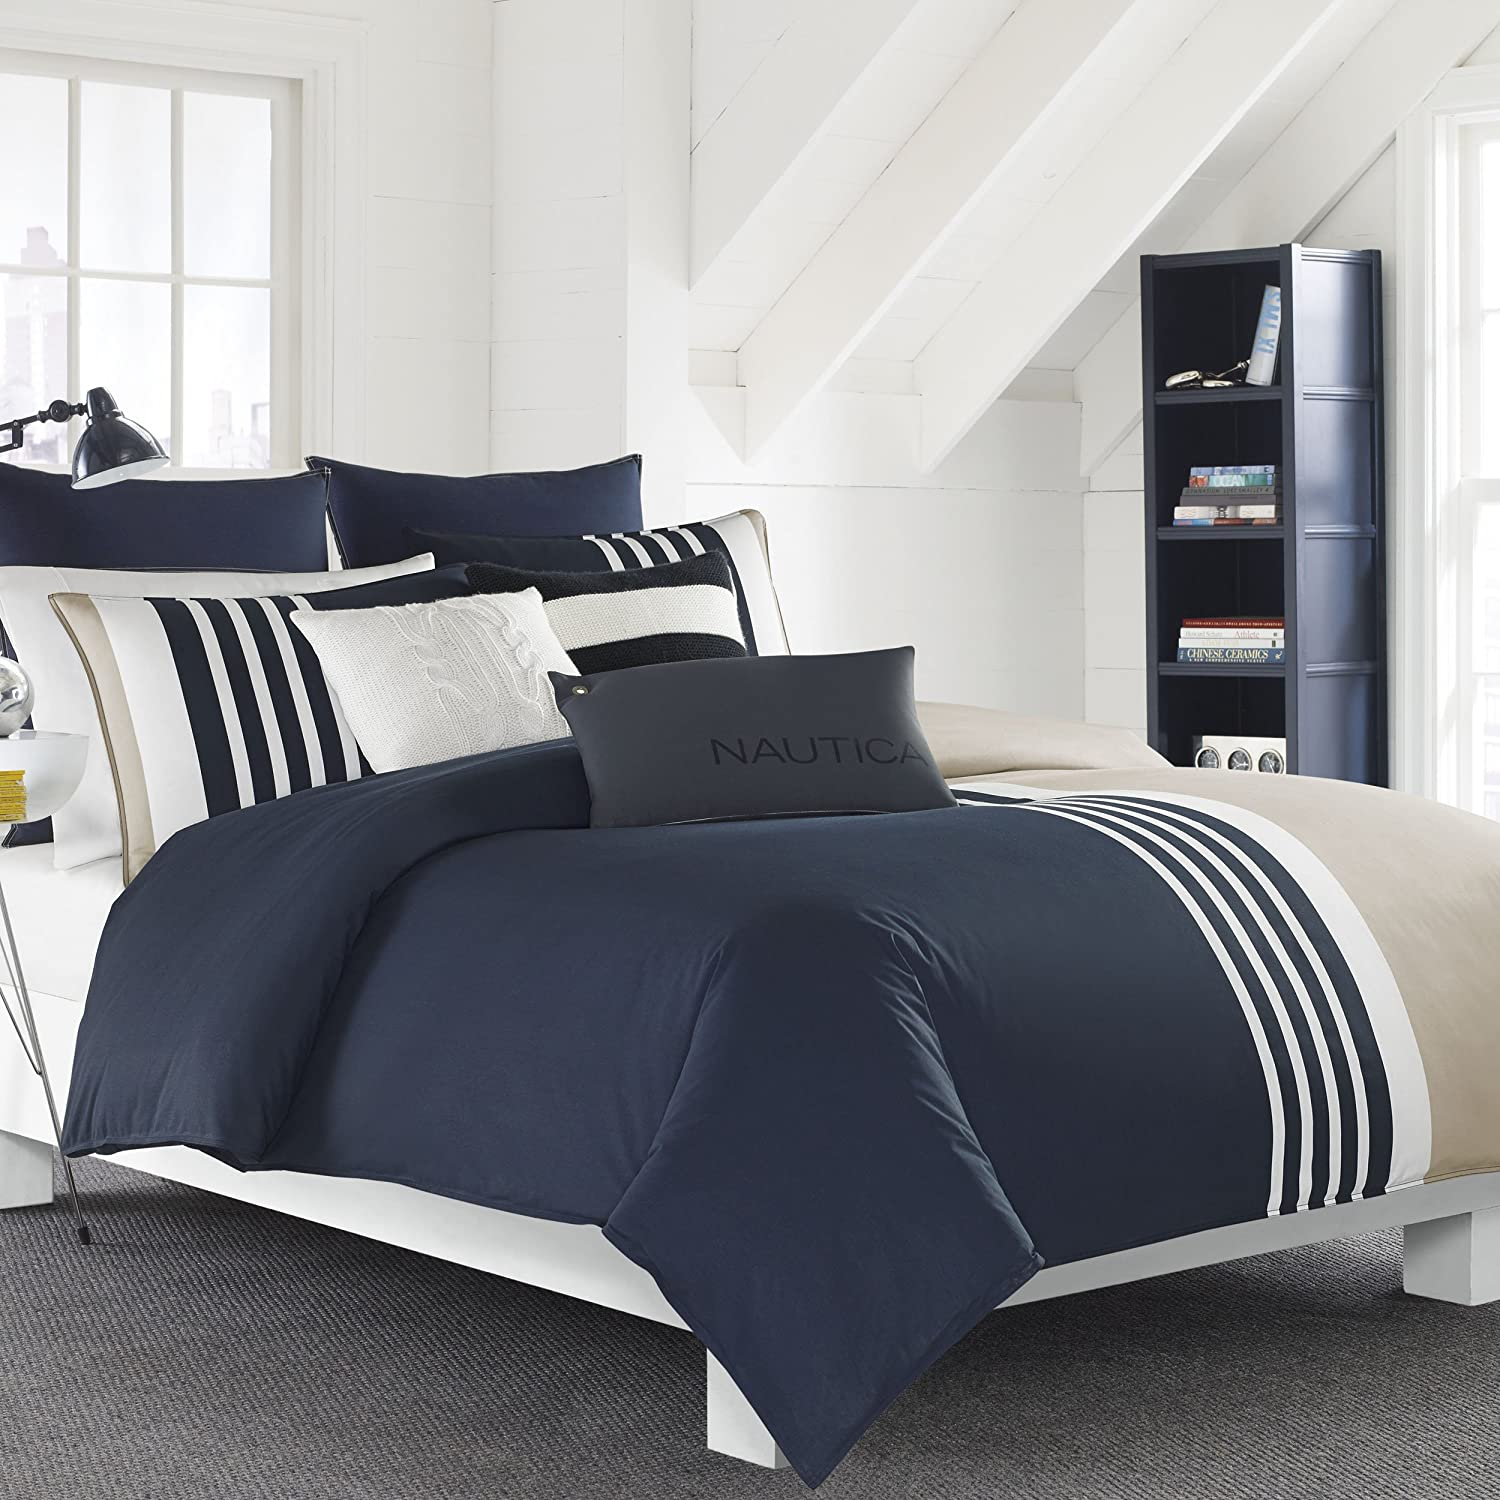 Nautica 221408 Aport Comforter Set, Navy, Full/Queen